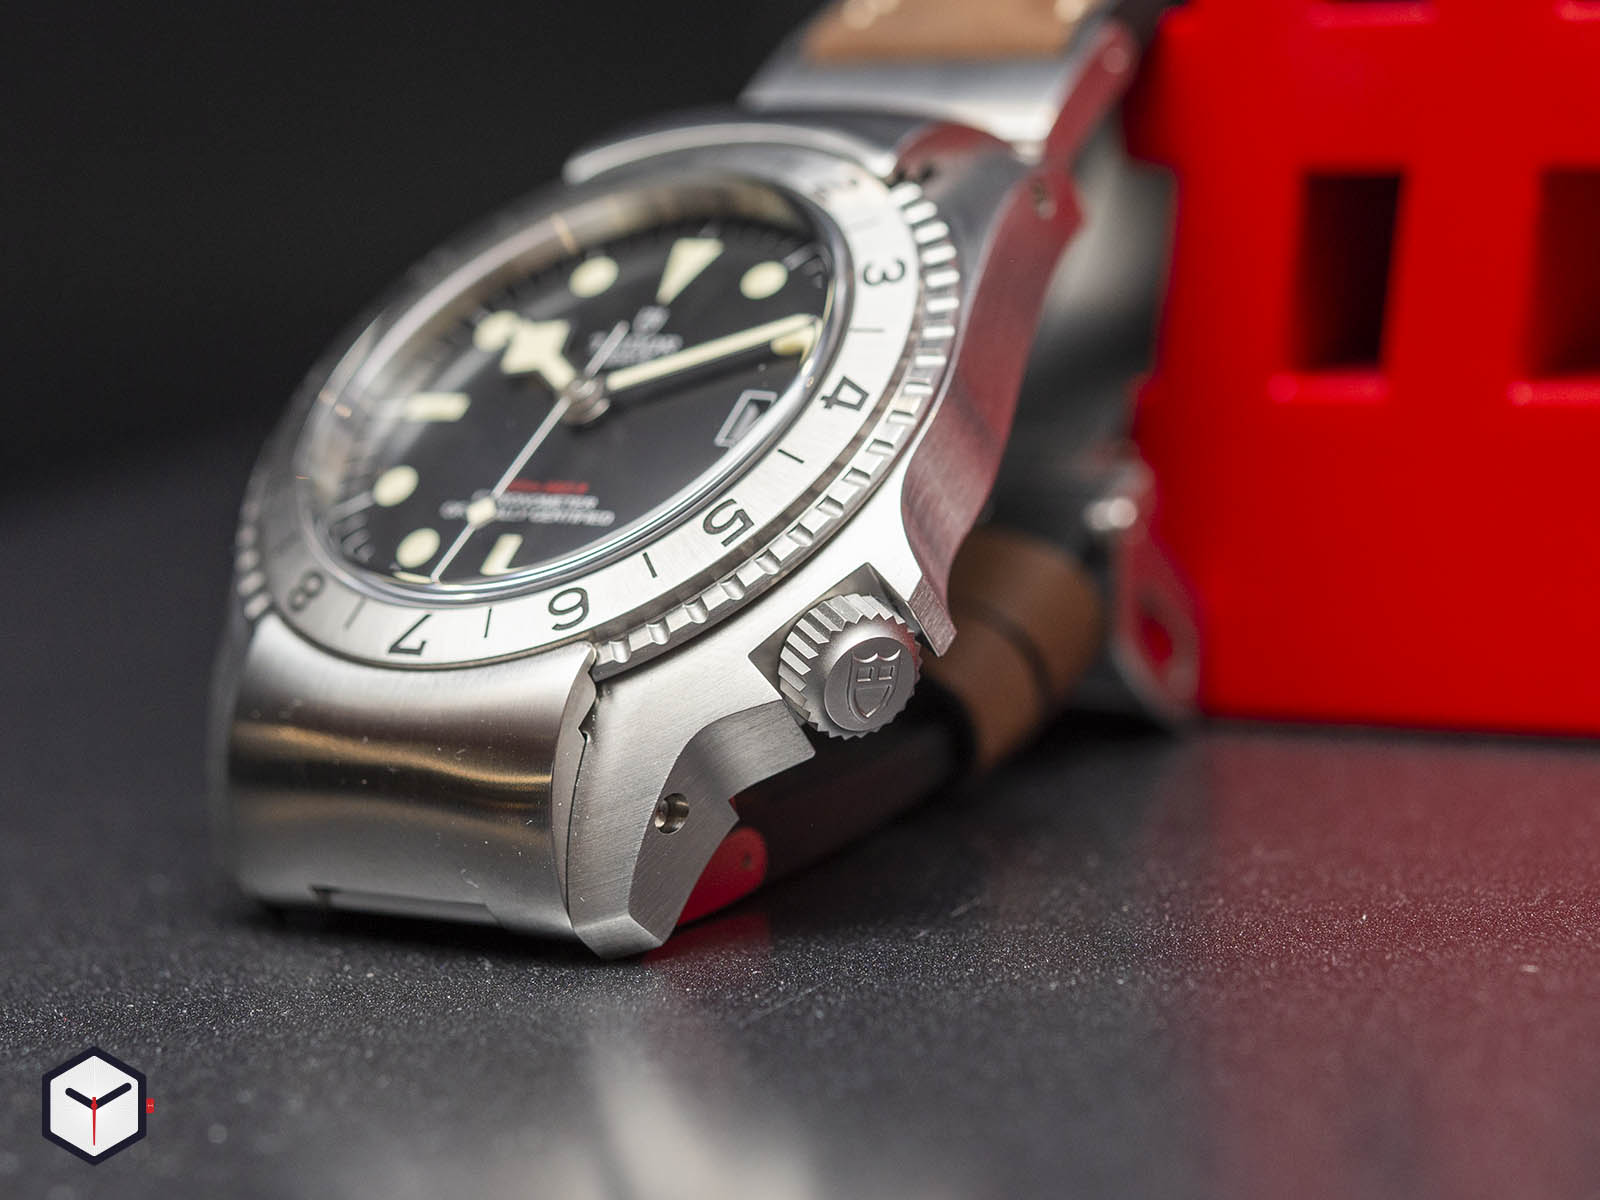 m70150-0001-tudor-black-bay-p01-baselworld-2019-5.jpg